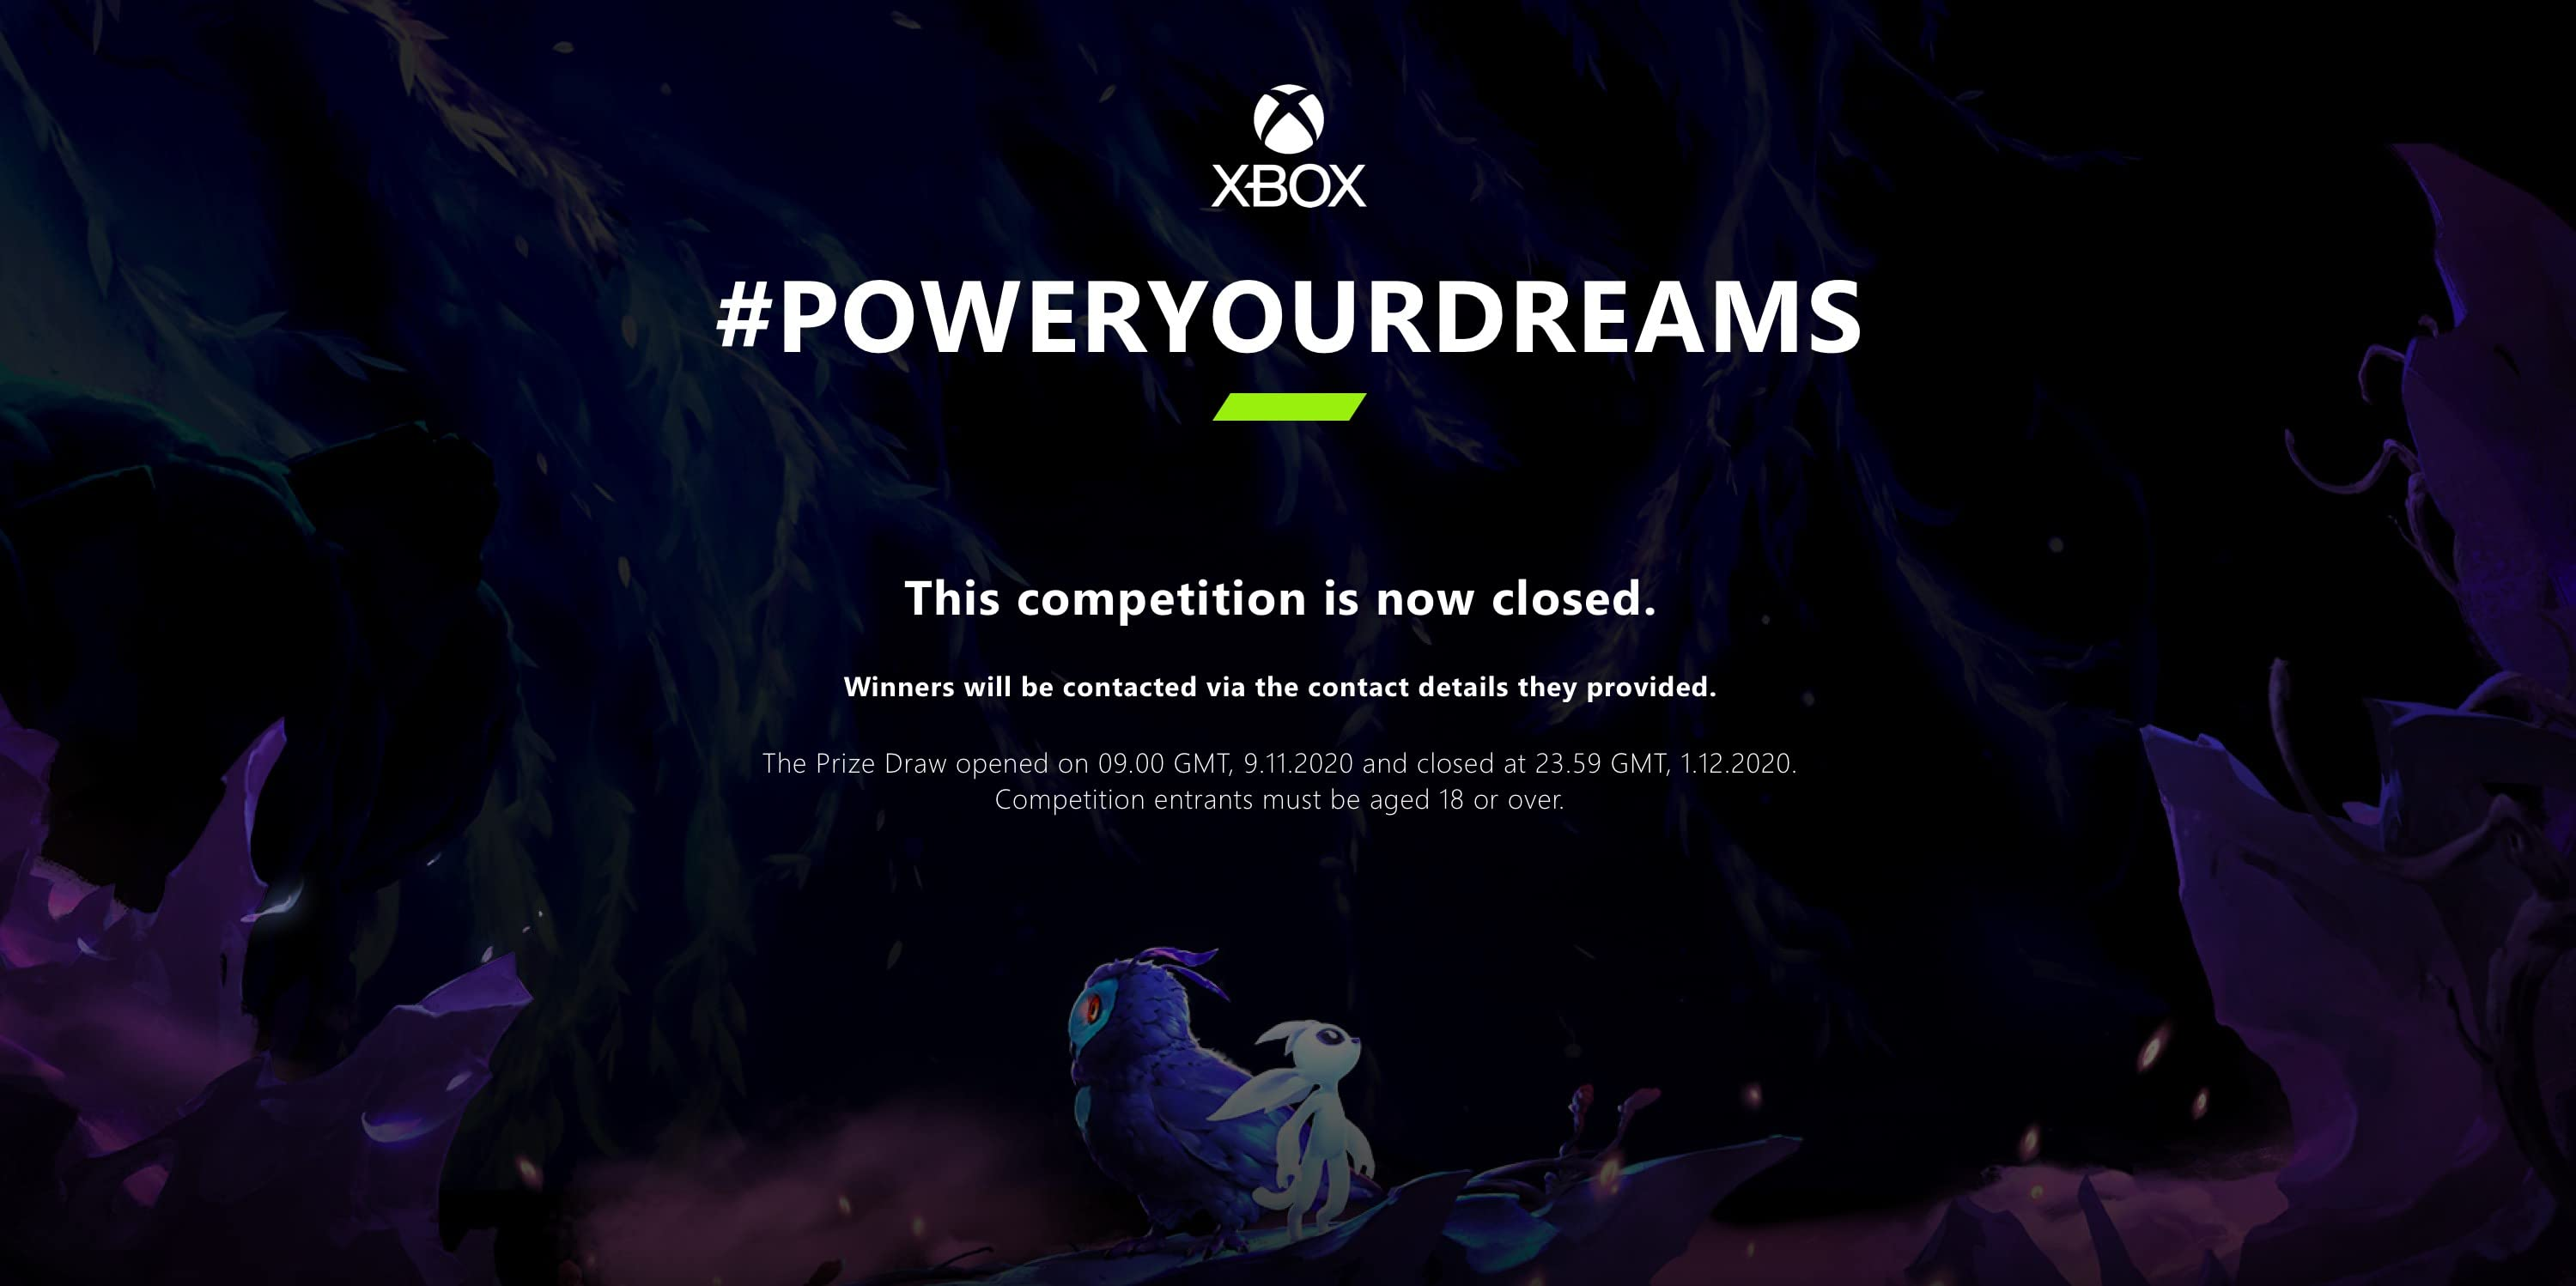 #POWERYOURDREAMS. This competition is now closed. Winners will be contacted via the contact details they provided. The Prize Draw opened on 09.00 GMT, 9.11.2020 and closed at 23.59 GMT, 1.12.2020. Competition entrants must be aged 18 or over.